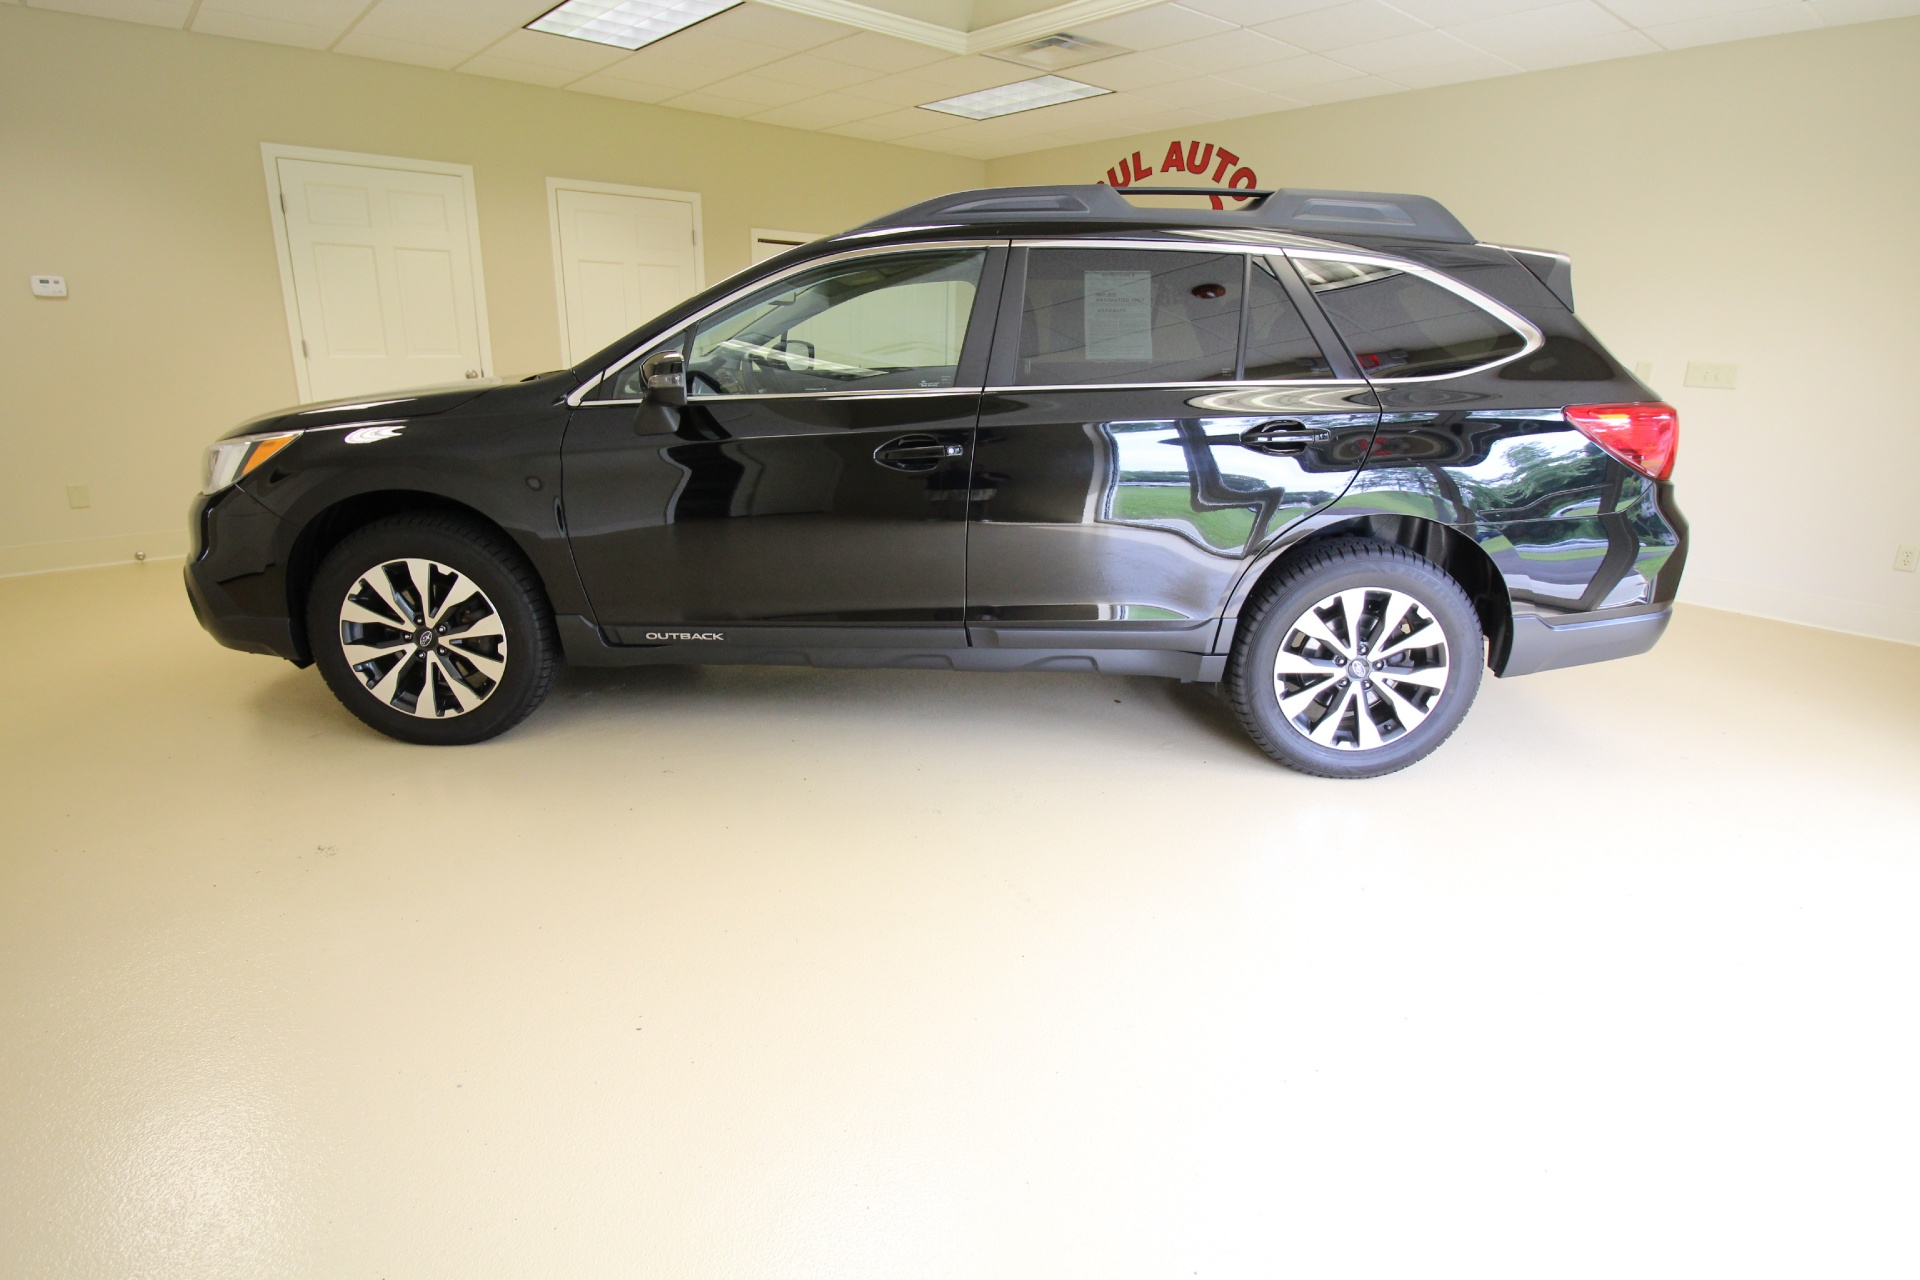 2015 subaru outback limited loaded with options stock 16164 for sale near albany ny ny. Black Bedroom Furniture Sets. Home Design Ideas